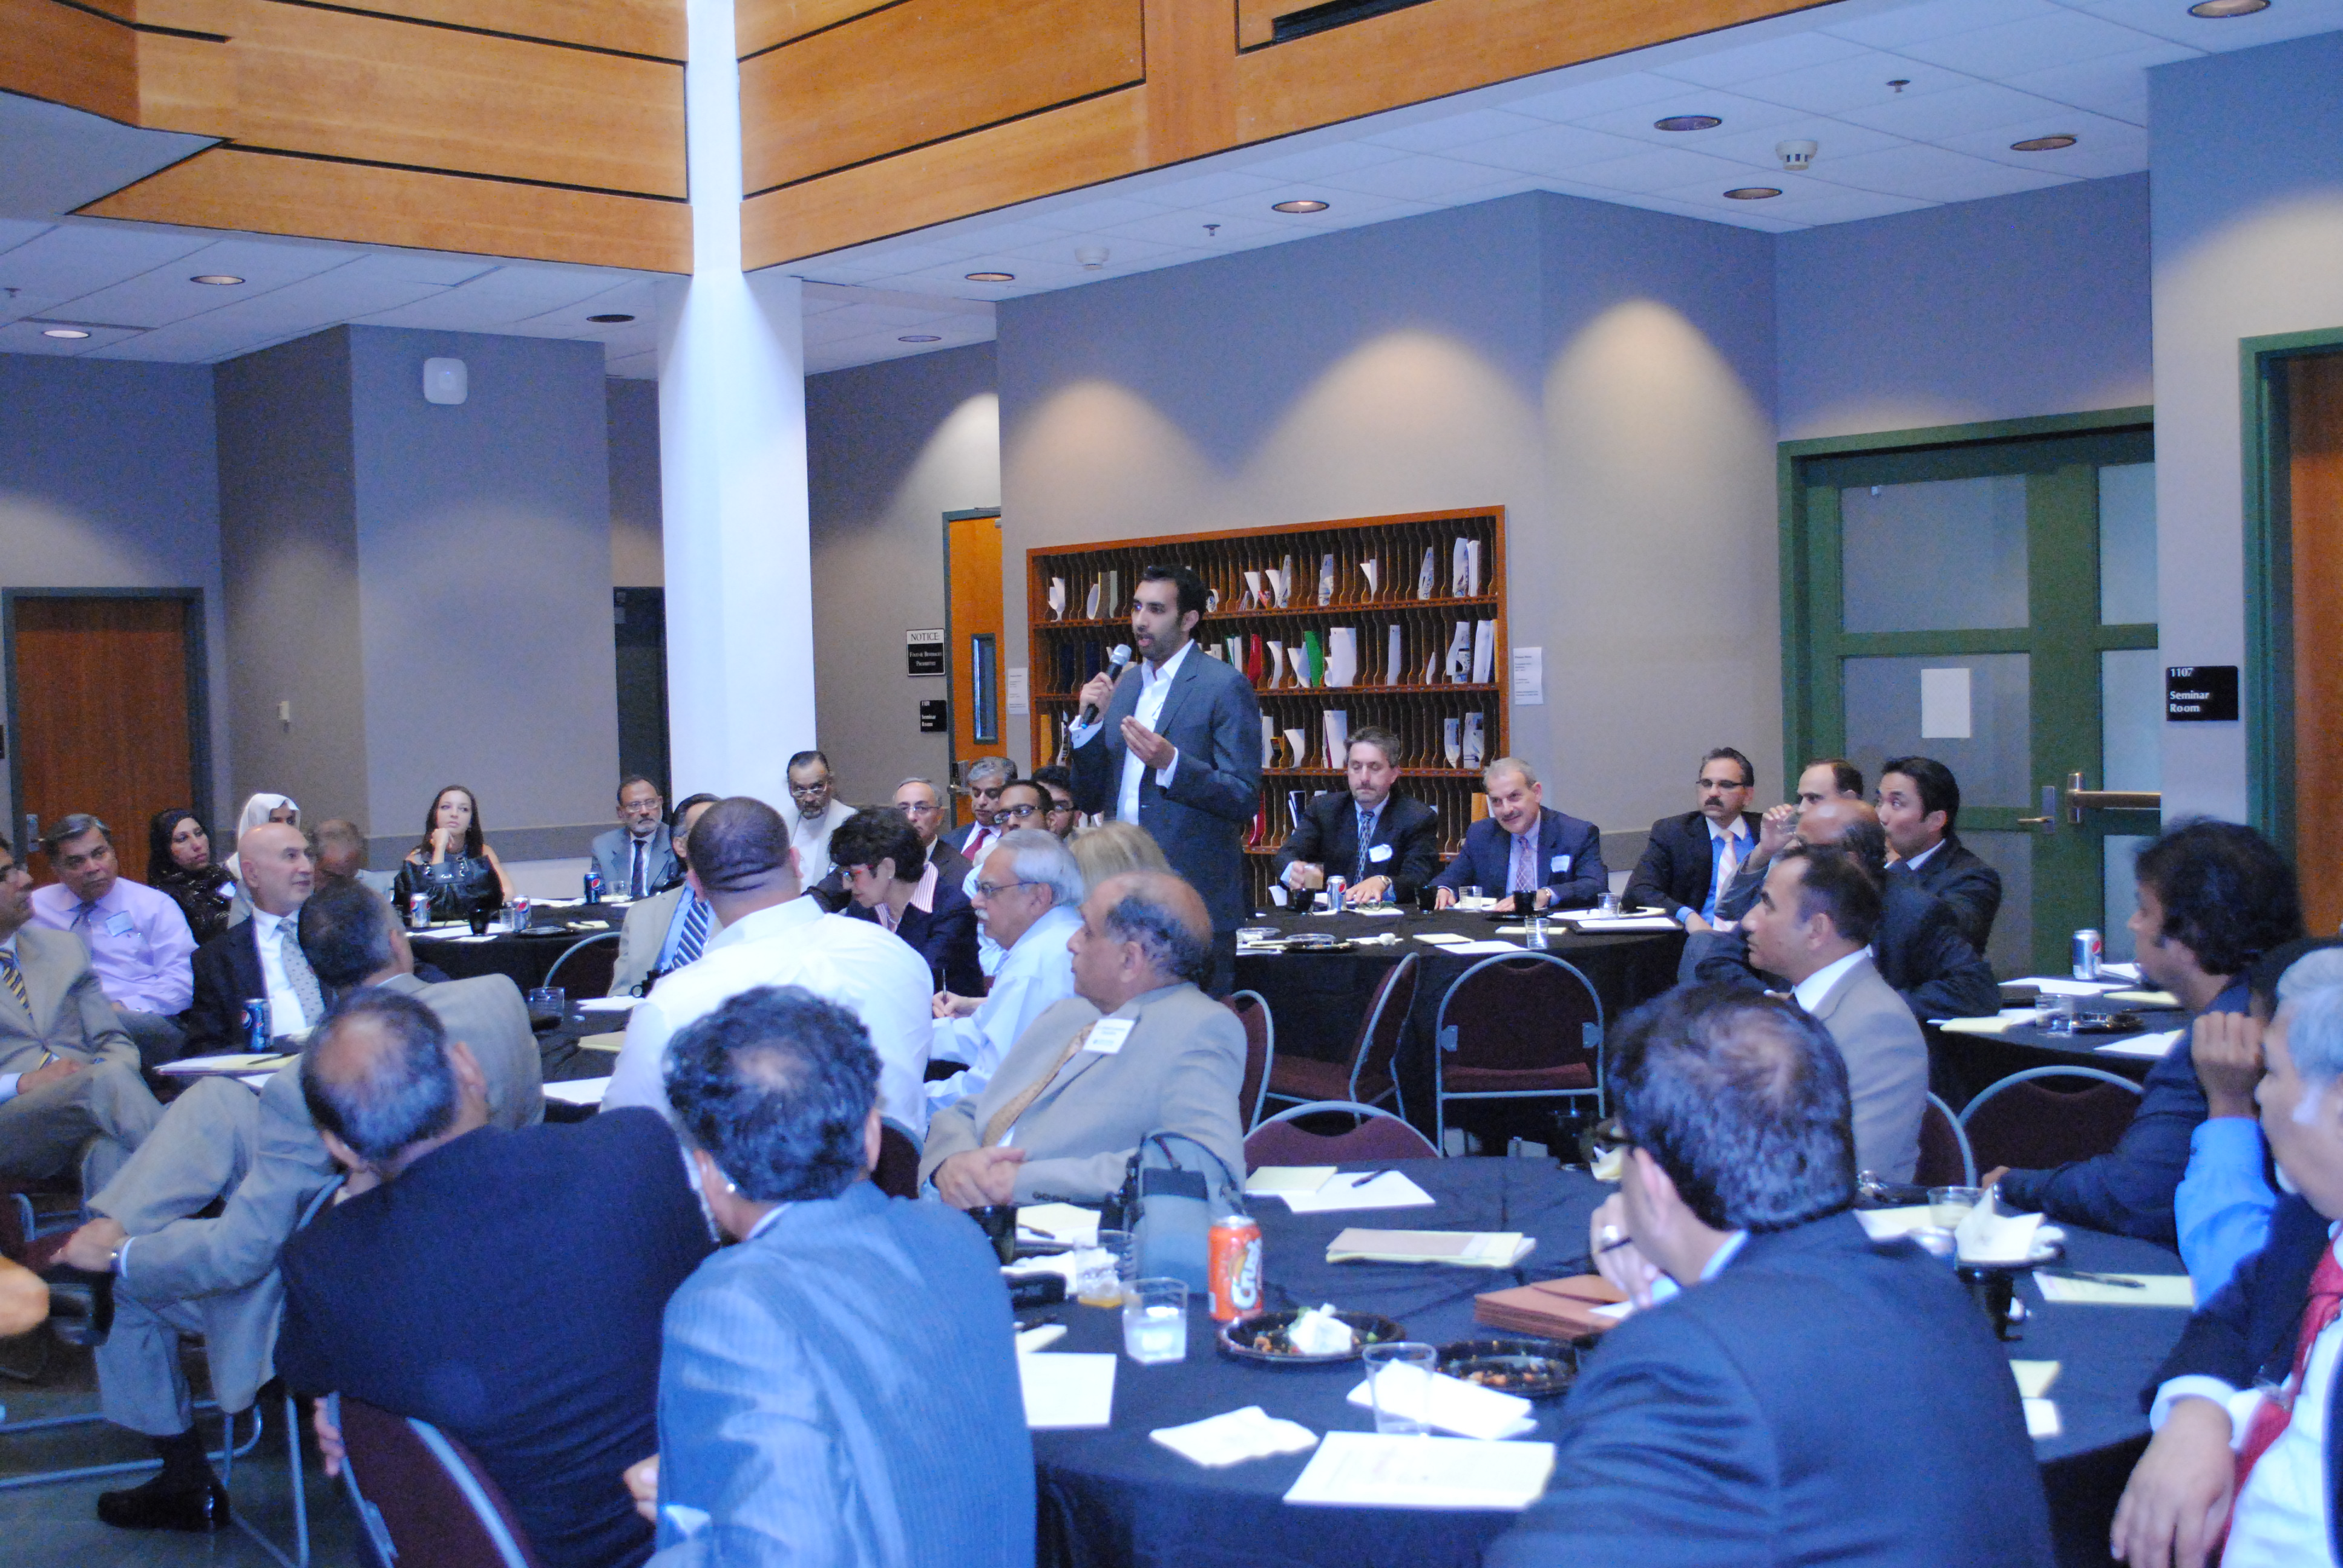 Muslim-American and Arab-American Roundtable on the Economy 1